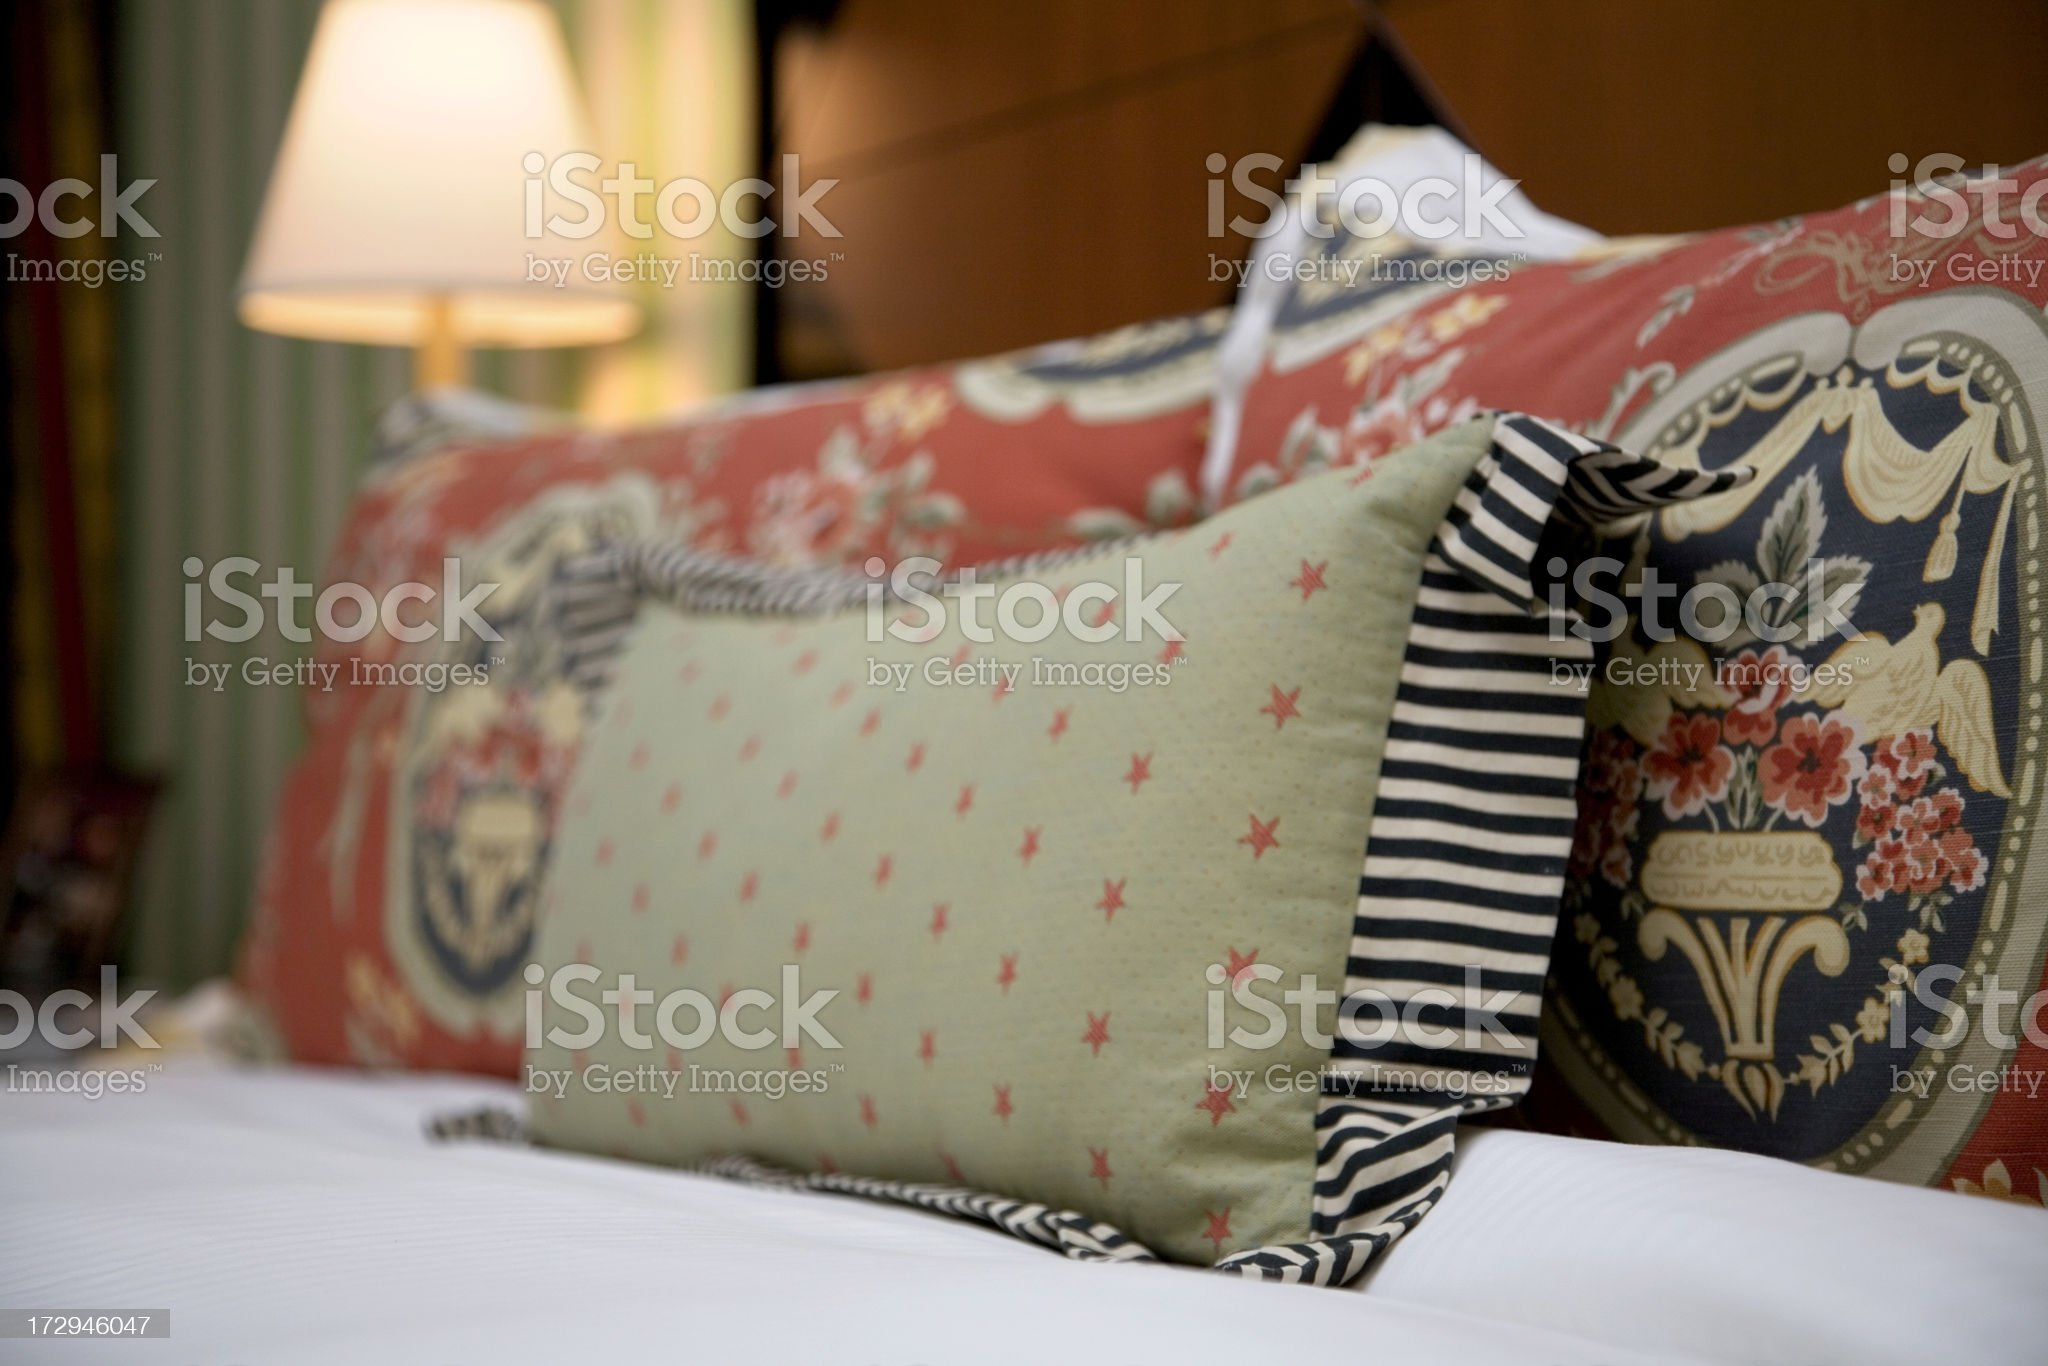 Decorative Pillows on Bed in Luxury Hotel Room royalty-free stock photo